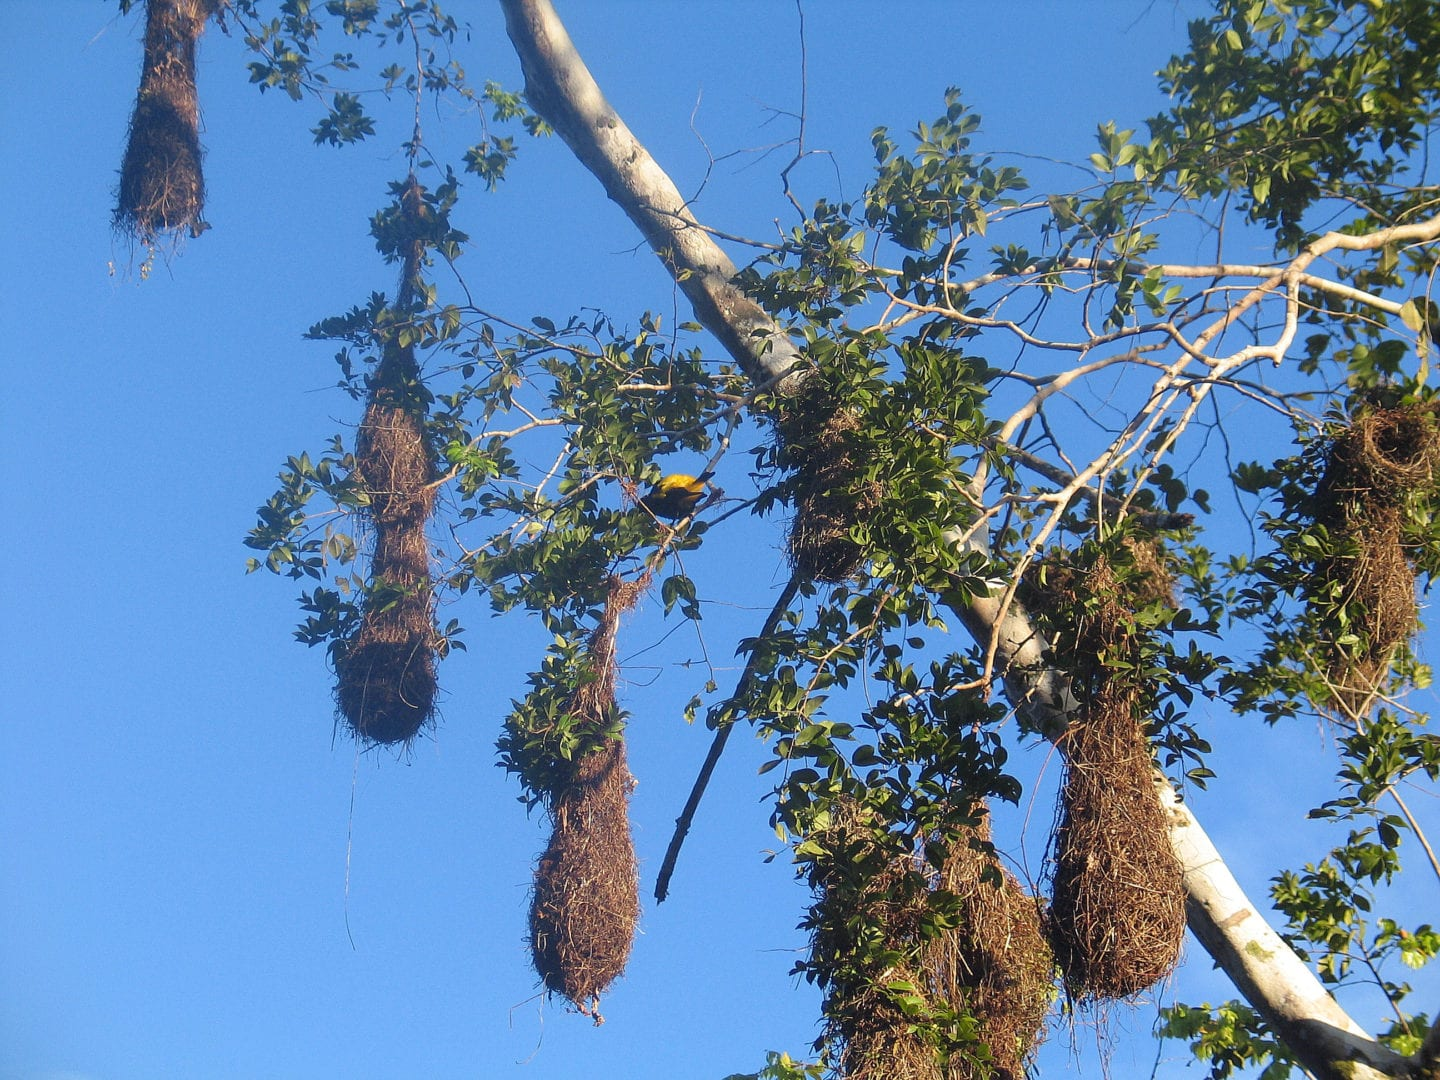 Nests of the Yellow Rump Cacique